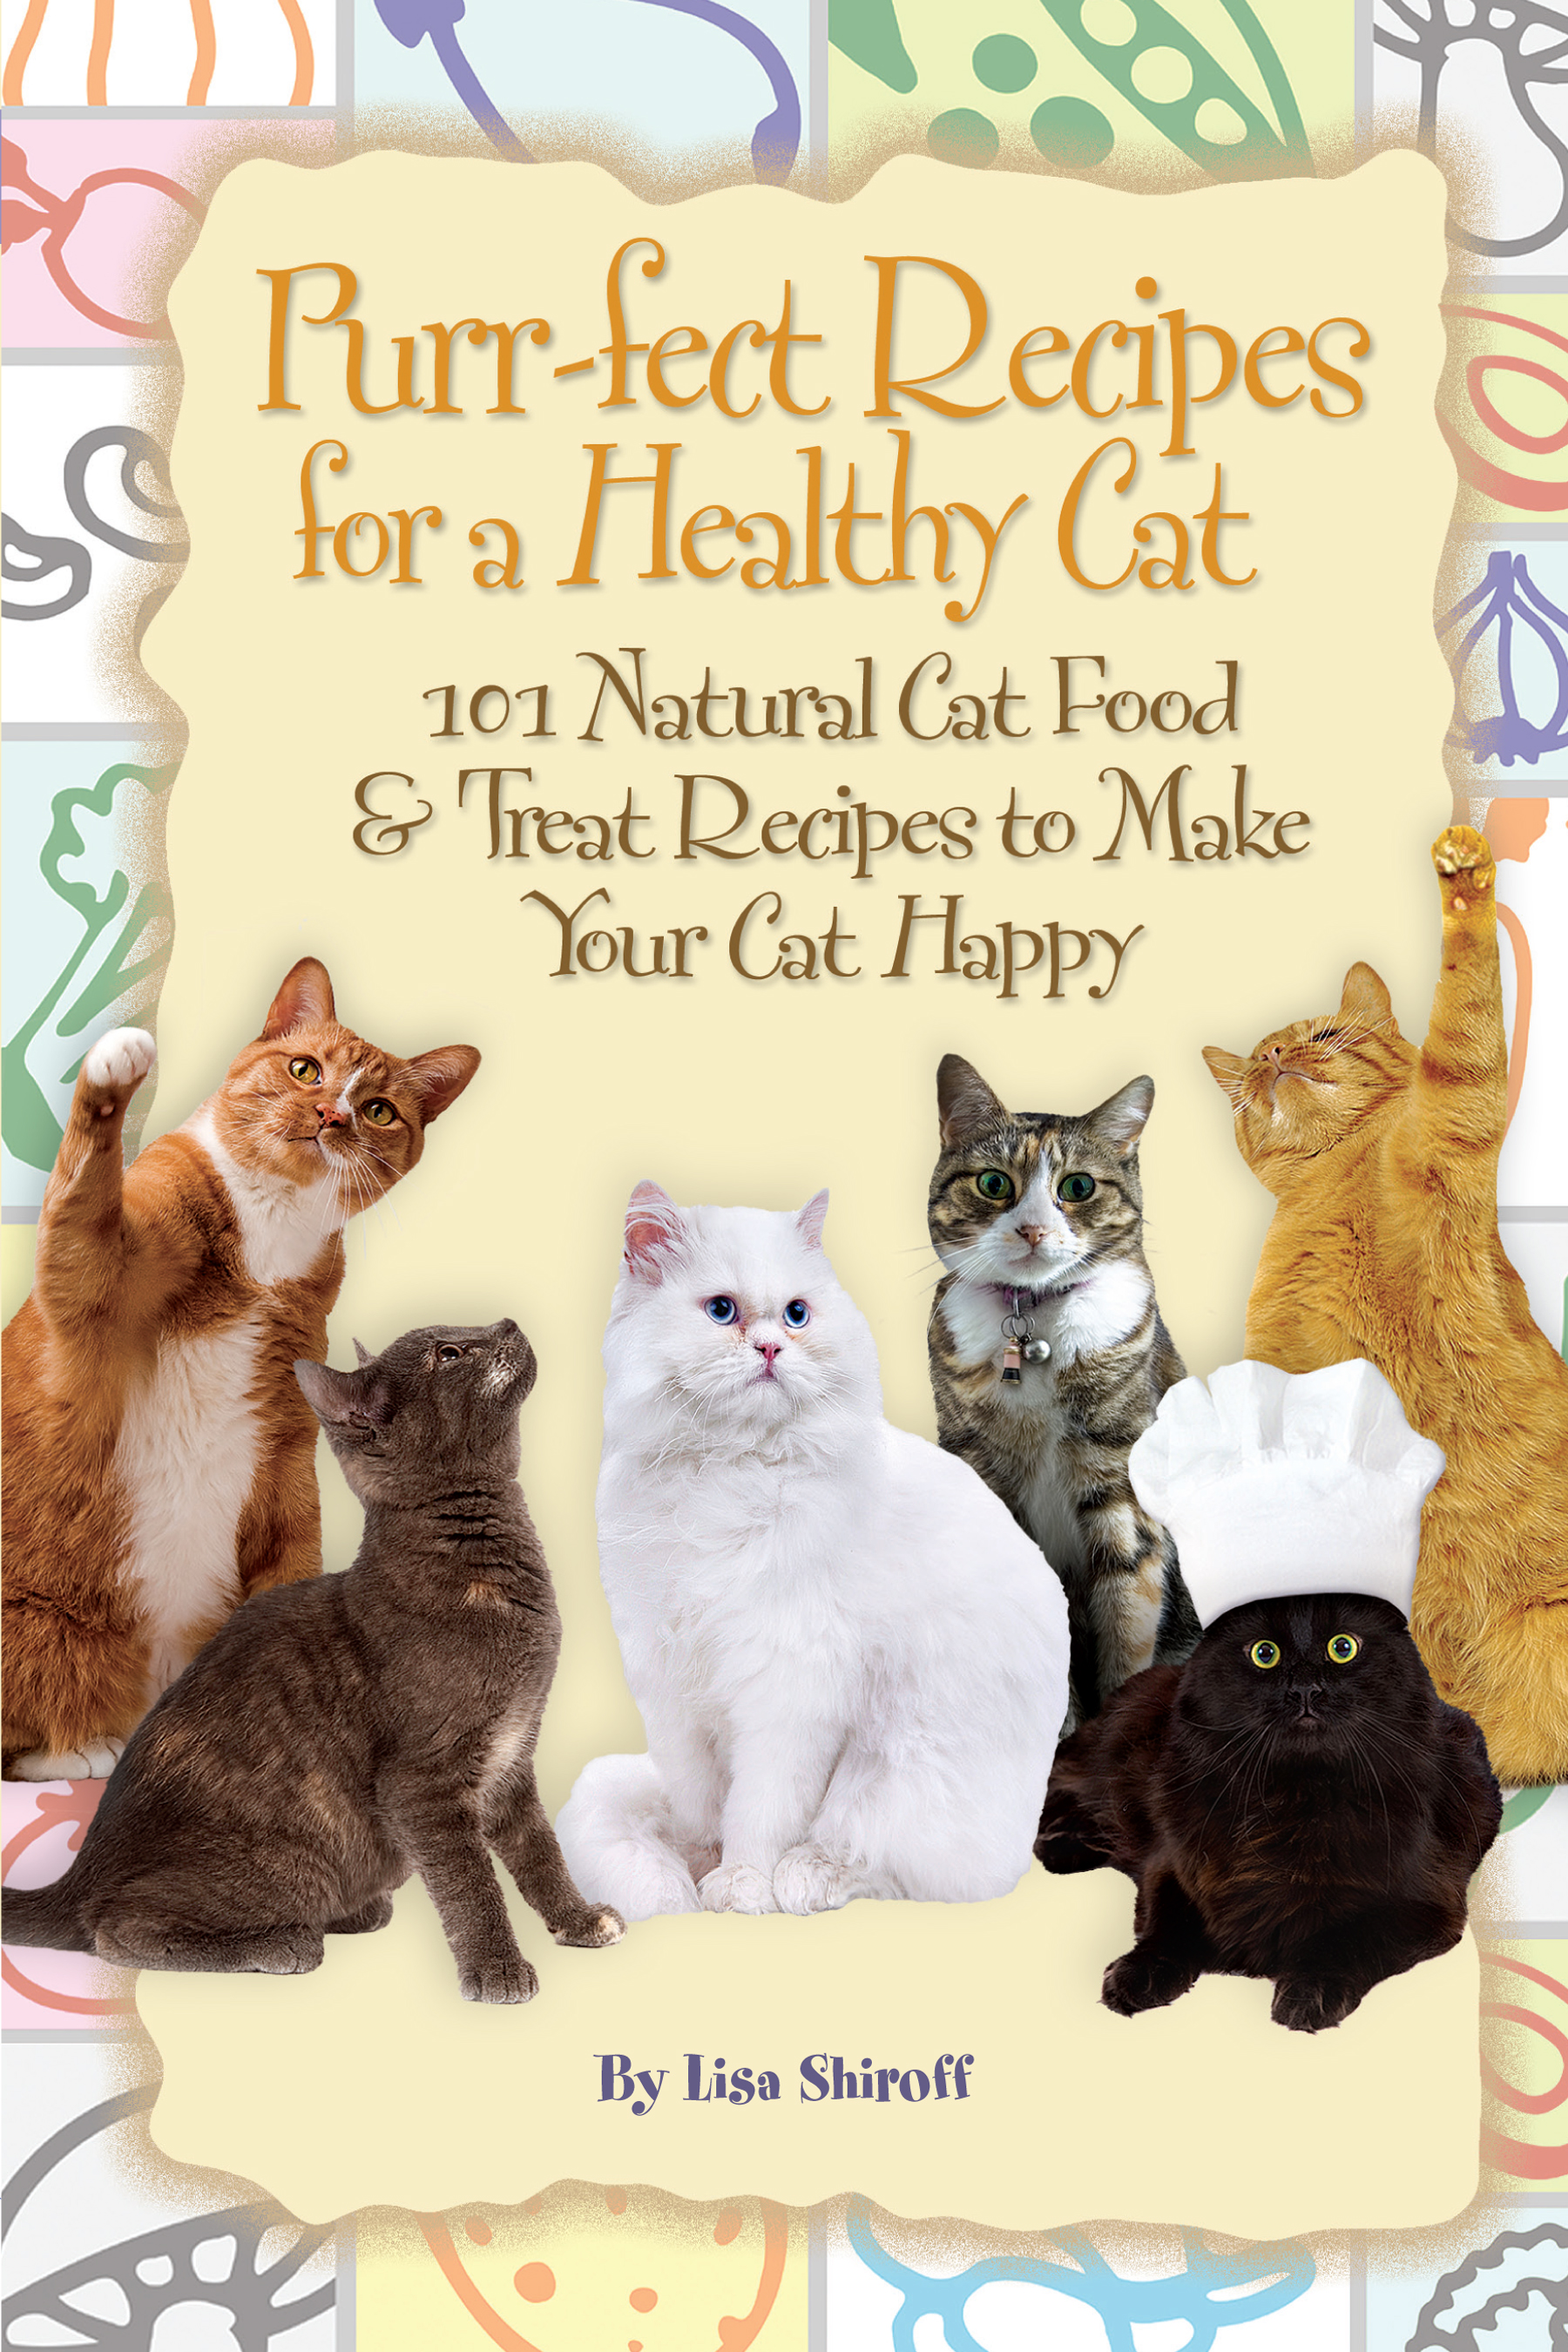 Purr-fect Recipes for a Healthy Cat 101 Natural Cat Food &Treat Recipes to Make Your Cat Happy